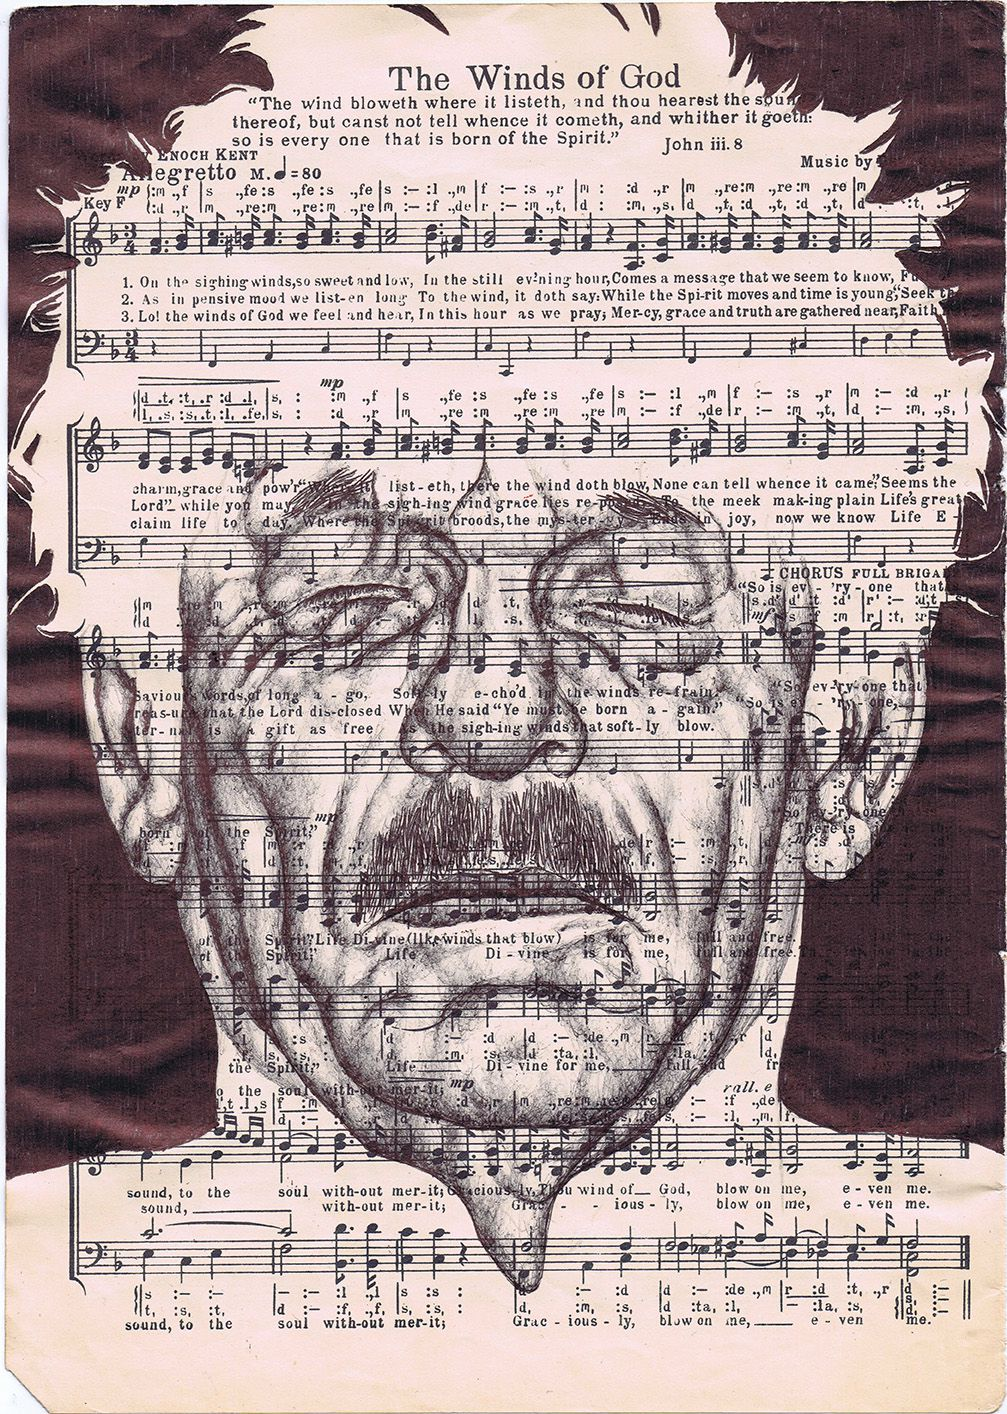 bic biro Drawing on a 1950s music sheet